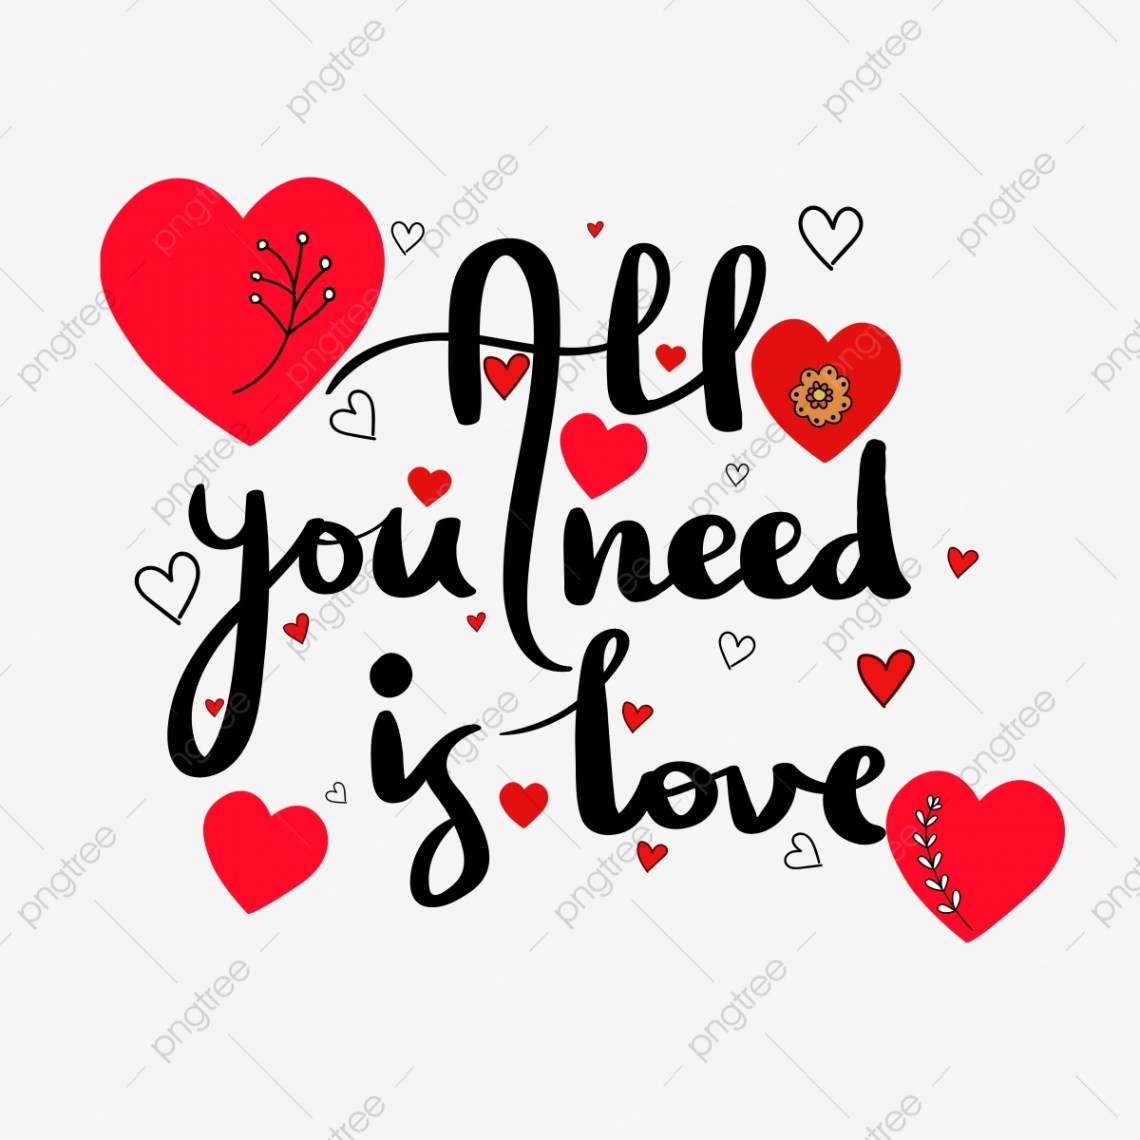 Download All You Need Is Love With Hearts, All You Need Is Love ...